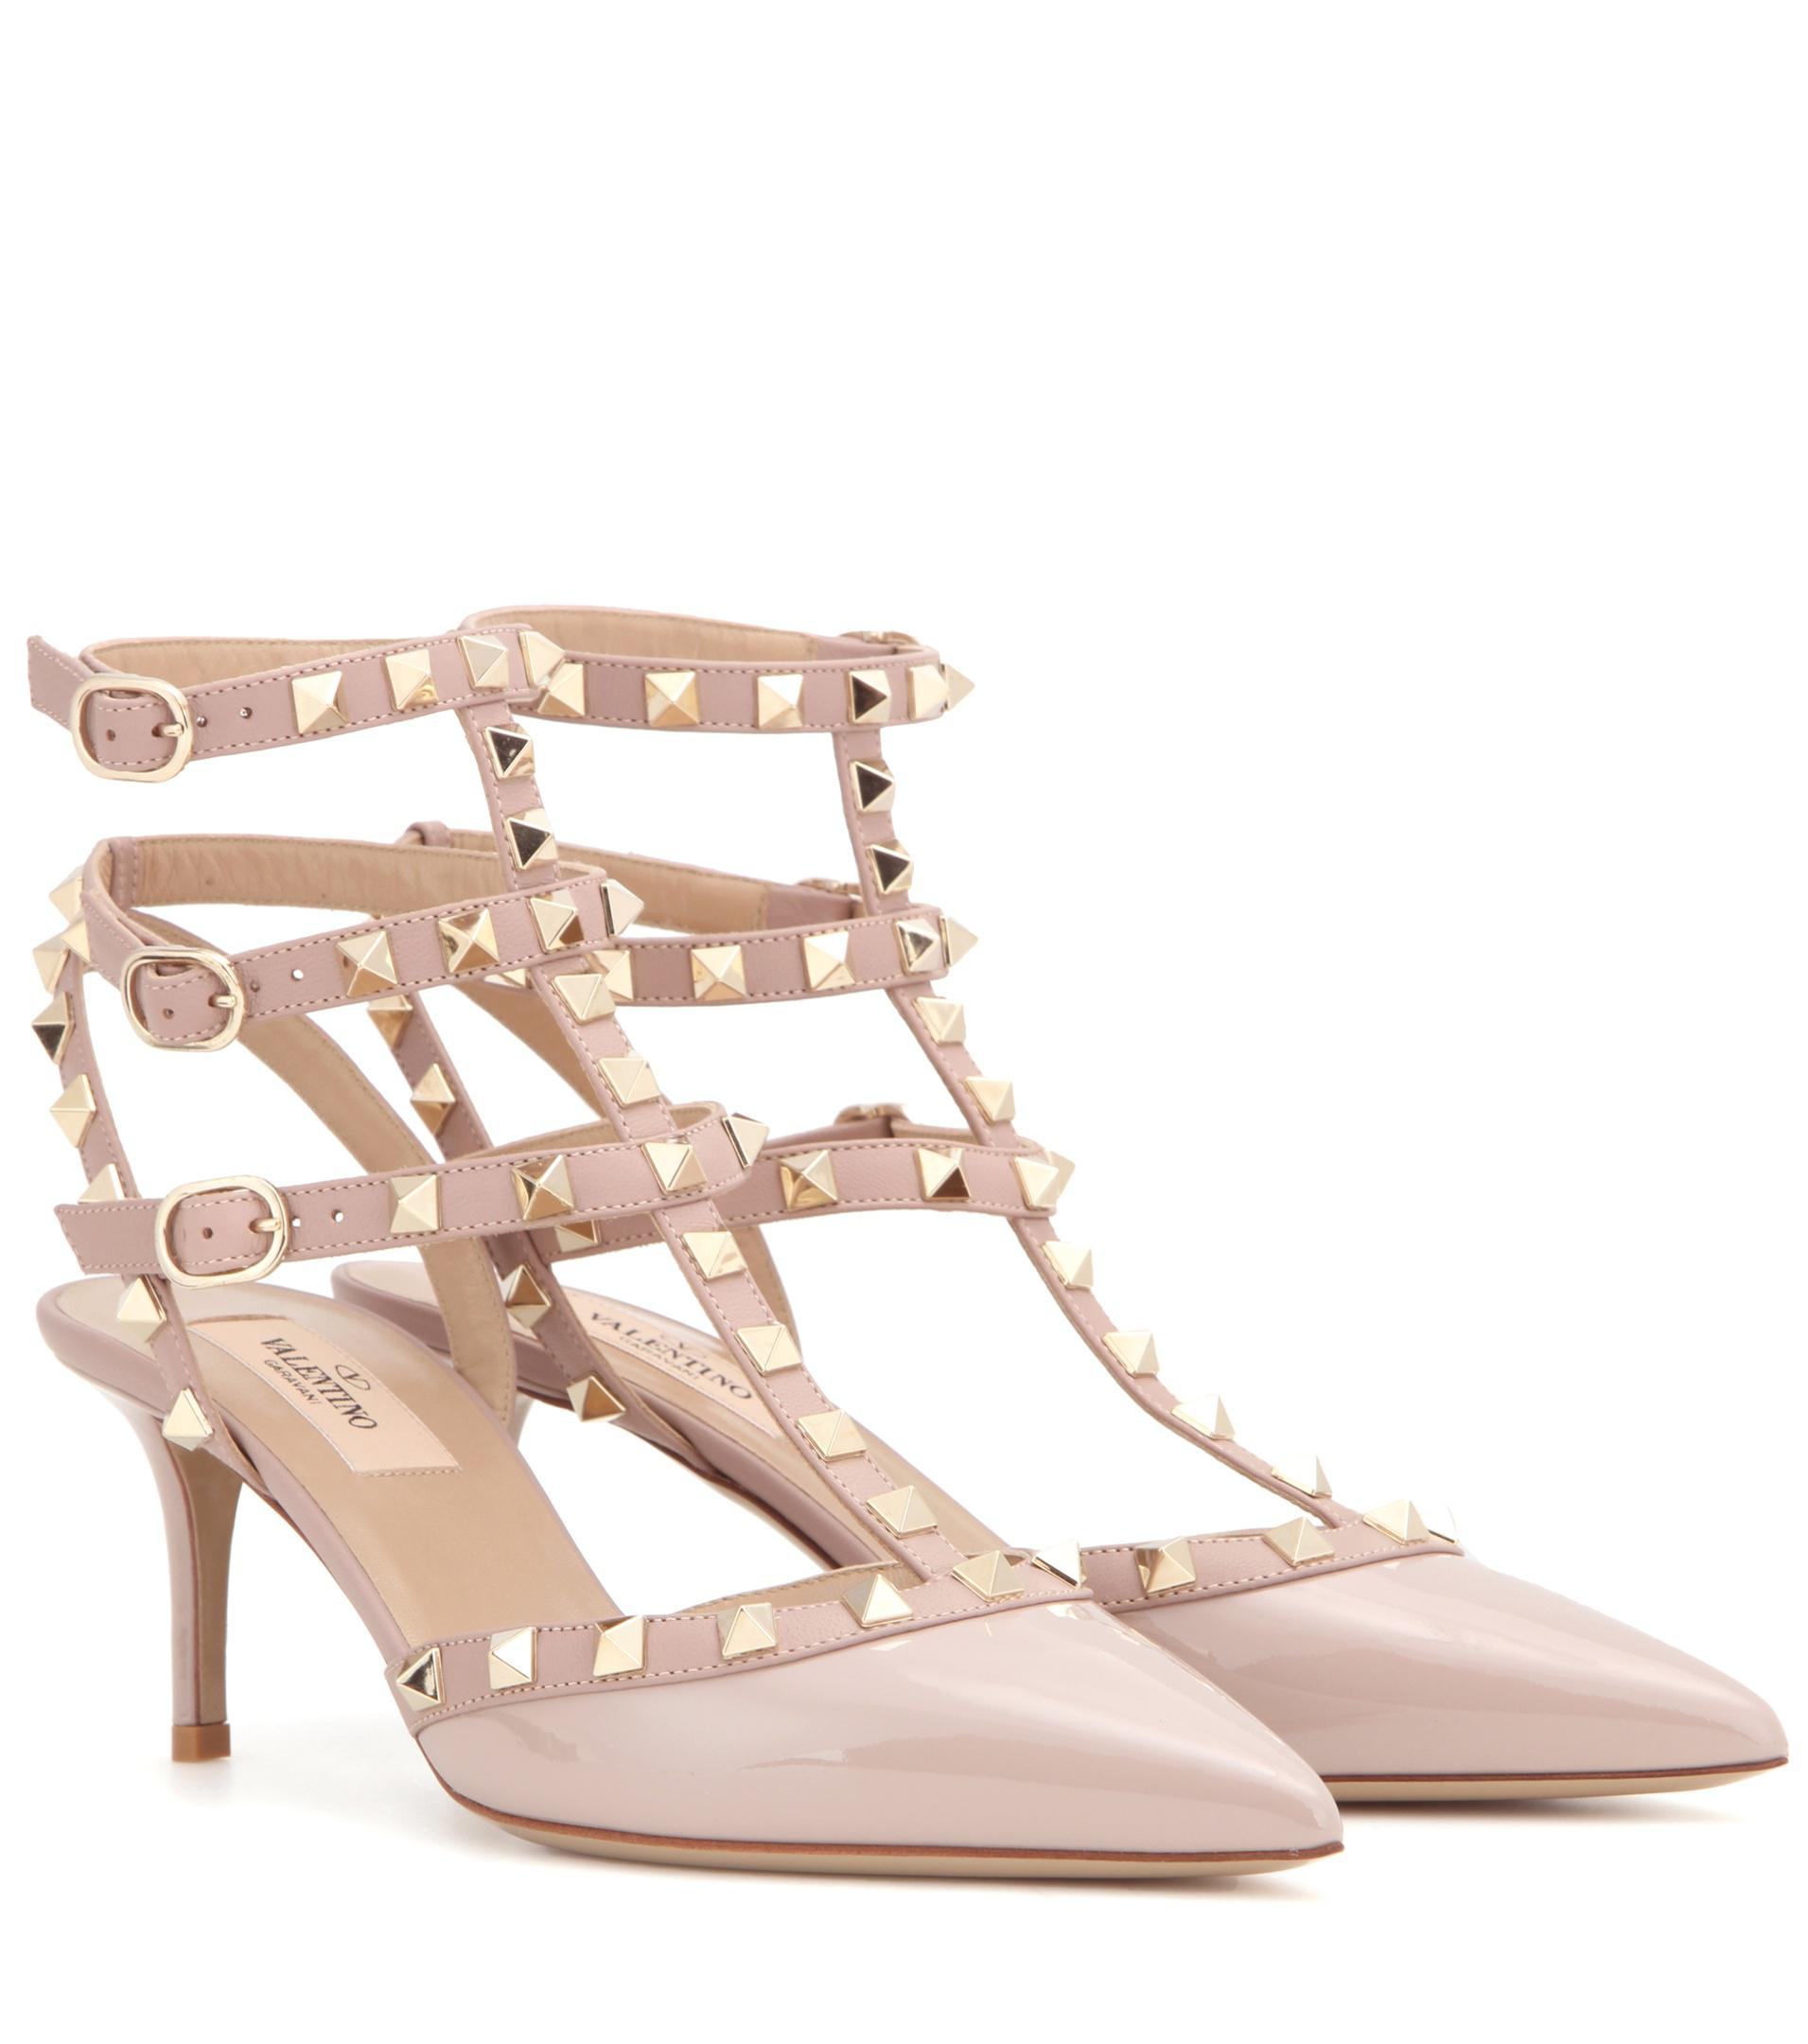 a1714065607 Lyst - Valentino Rockstud Patent Leather Pumps in Natural